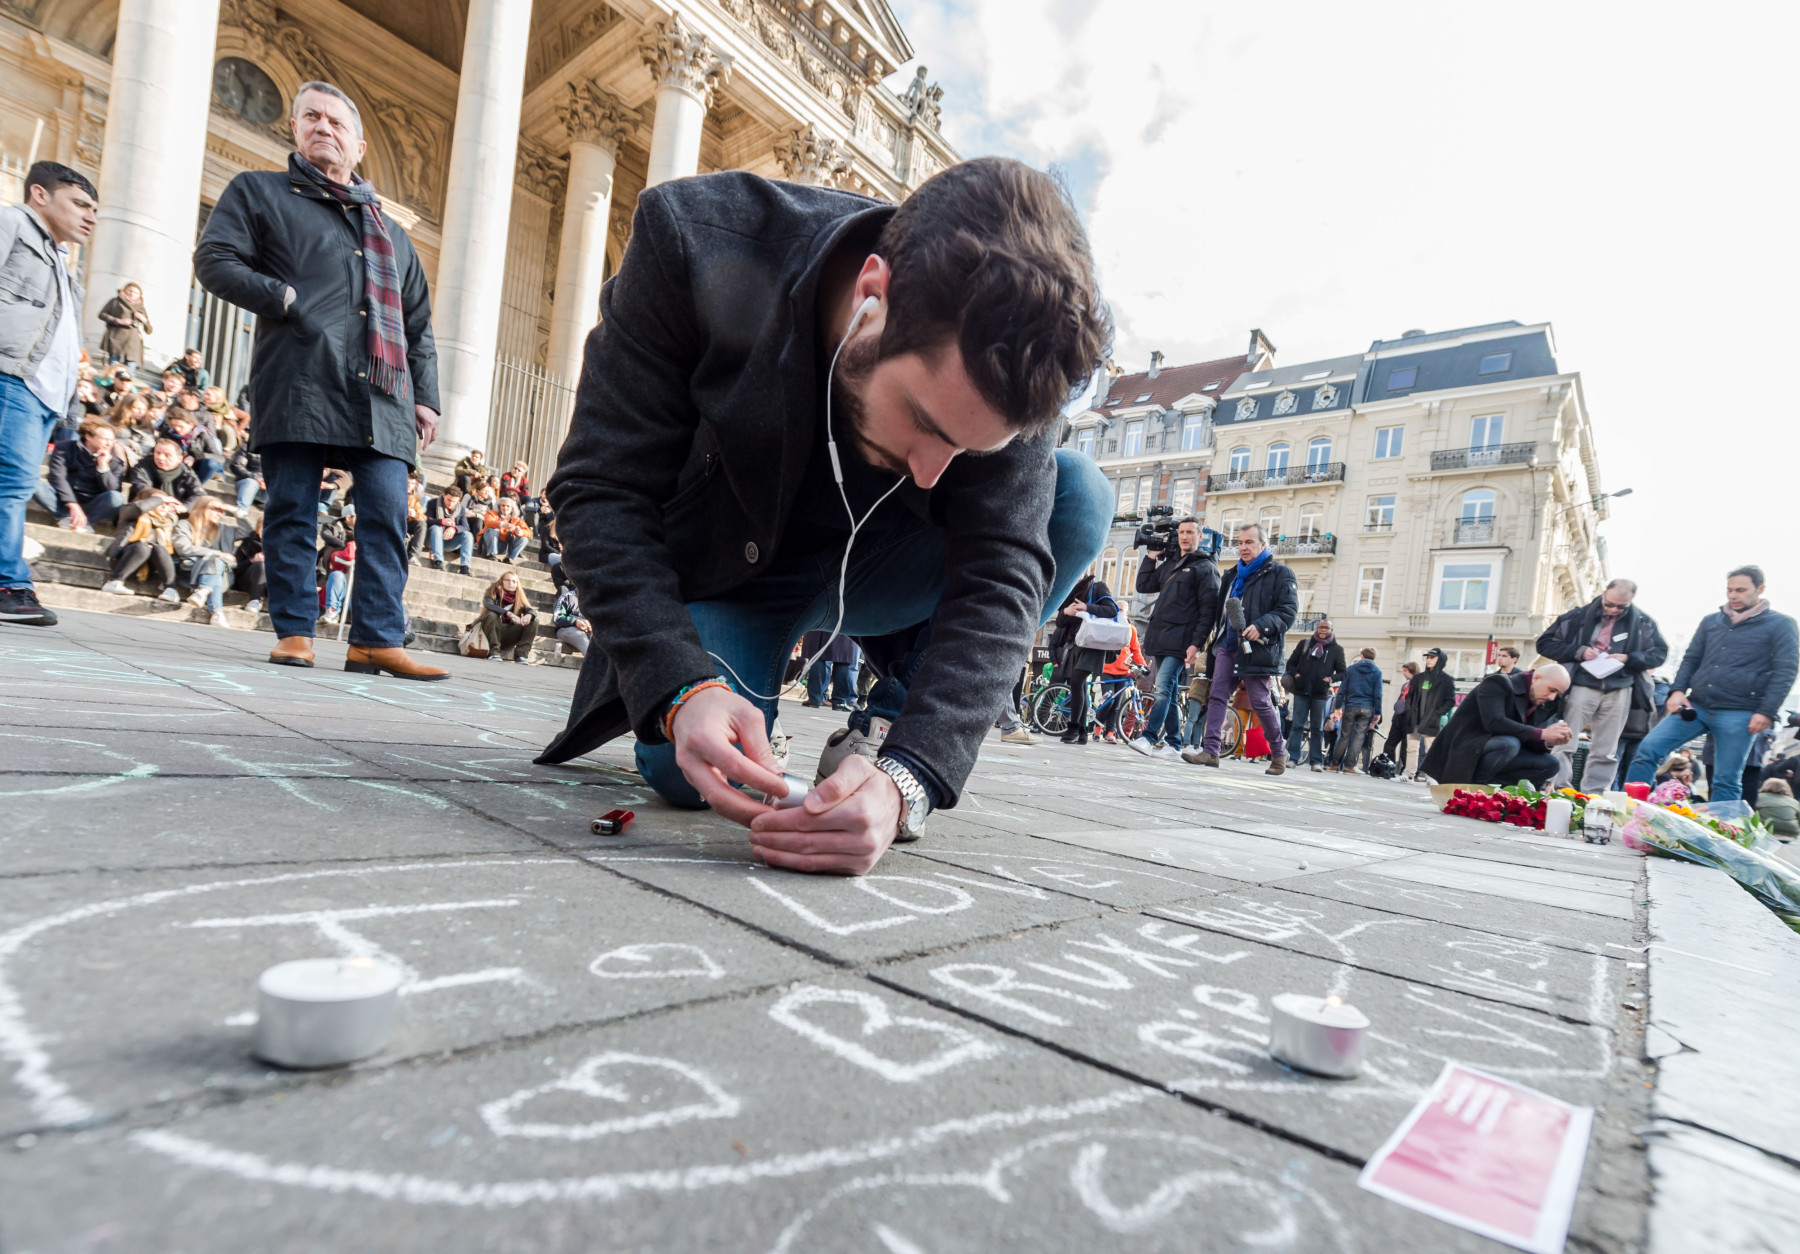 A man lights a candle at a memorial outside the stock exchange in Brussels on Tuesday, March 22, 2016. Explosions, at least one likely caused by a suicide bomber, rocked the Brussels airport and subway system Tuesday, prompting a lockdown of the Belgian capital and heightened security across Europe. (AP Photo/Geert Vanden Wijngaert)